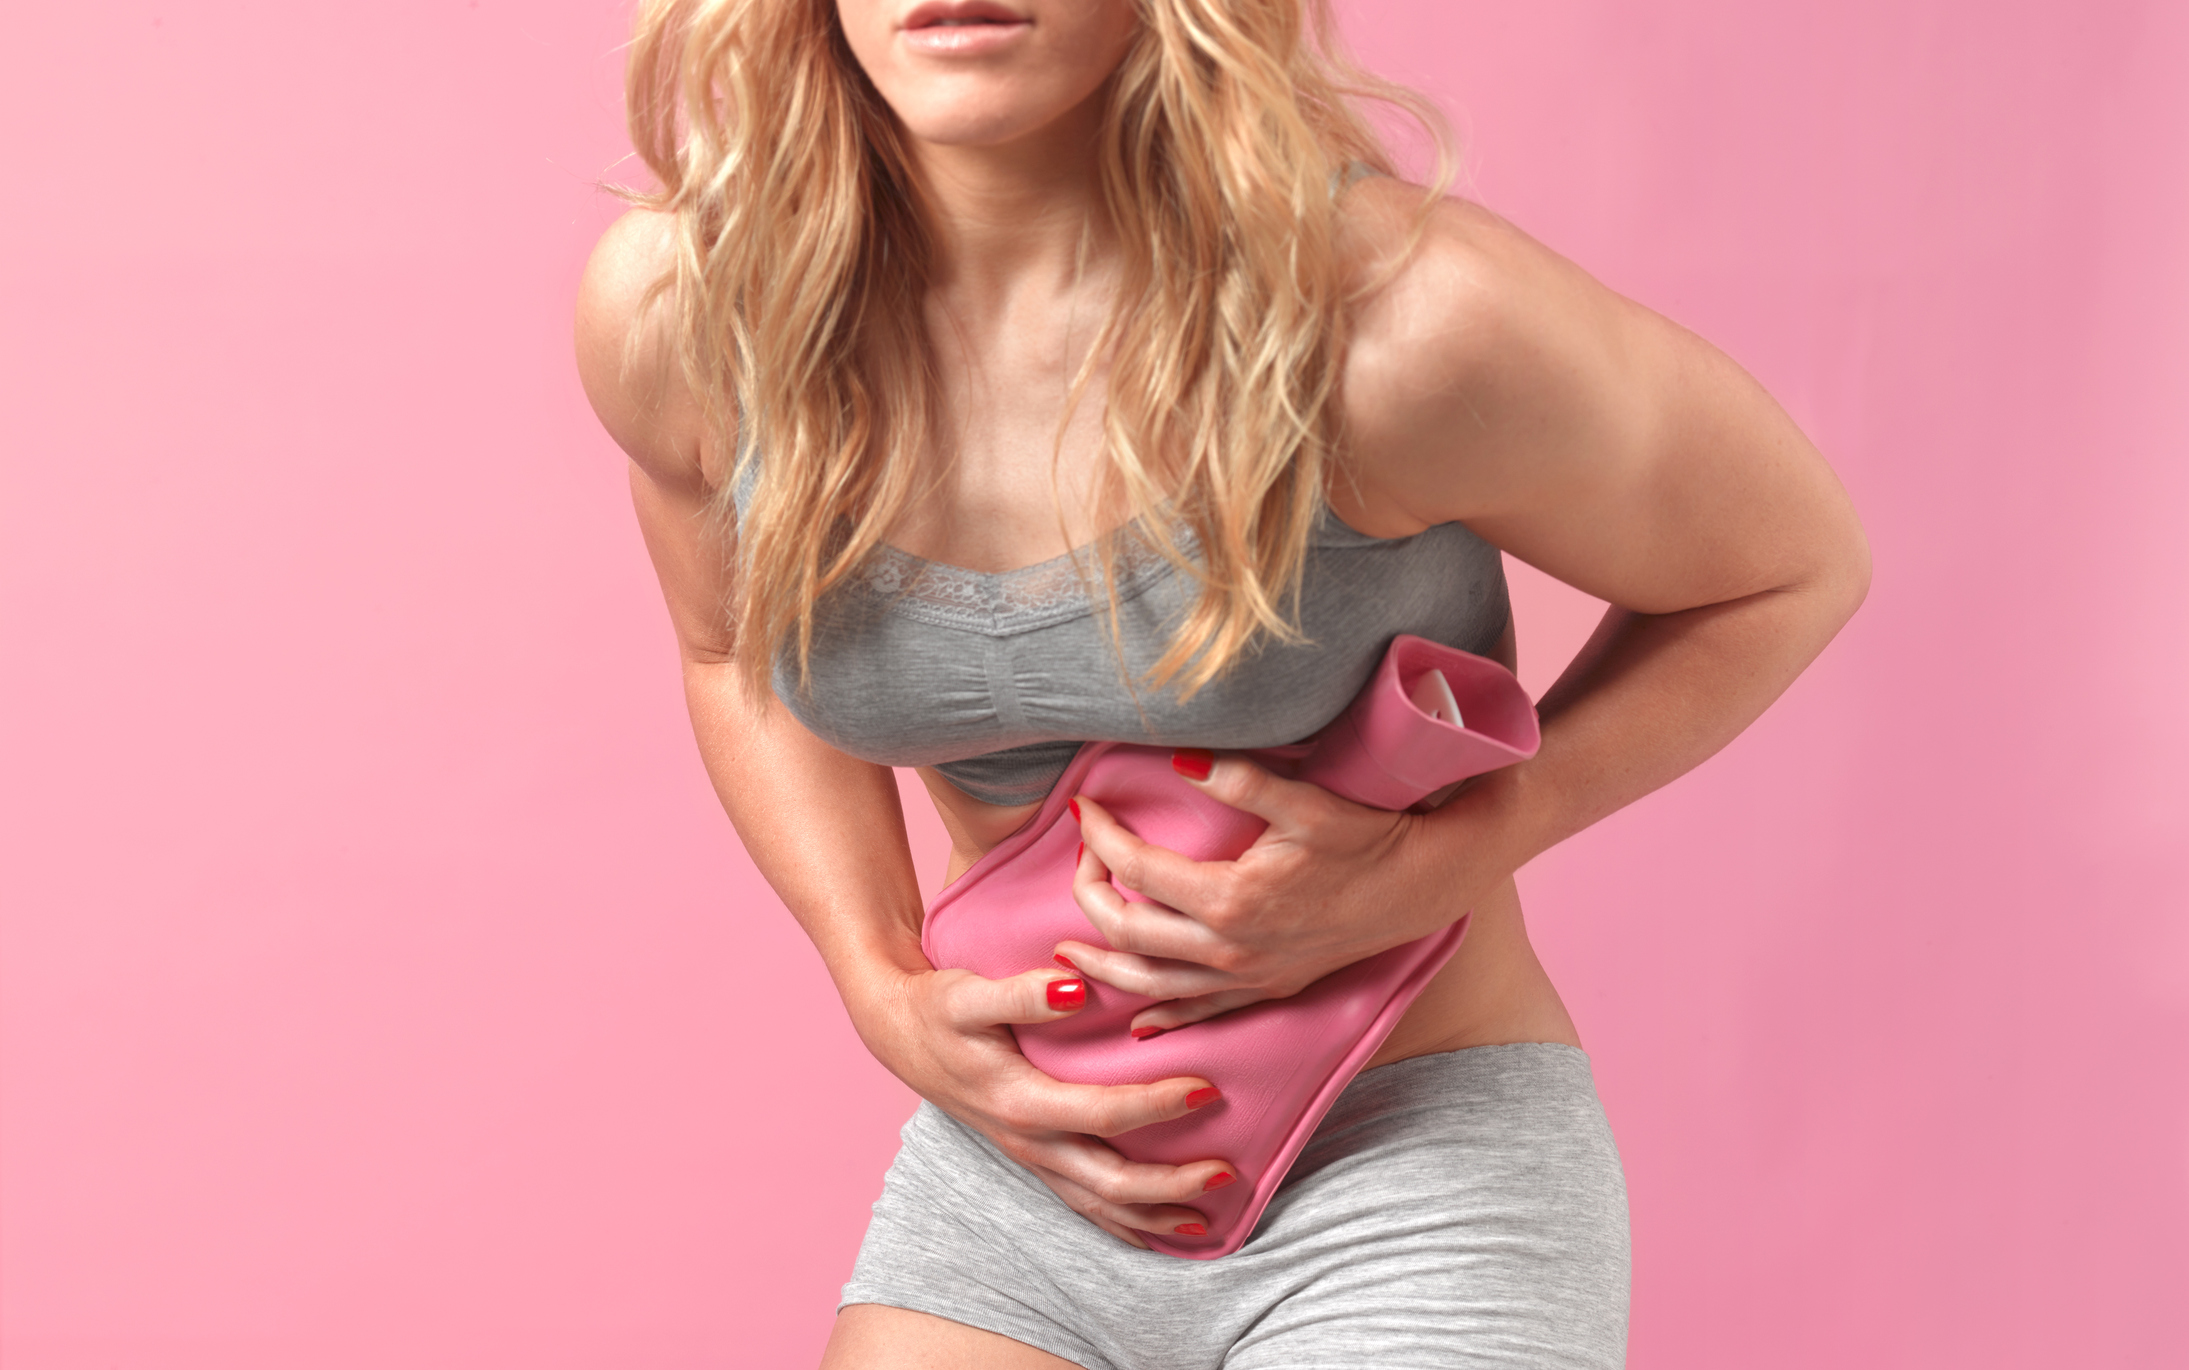 7 ways to cope with endometriosis pain